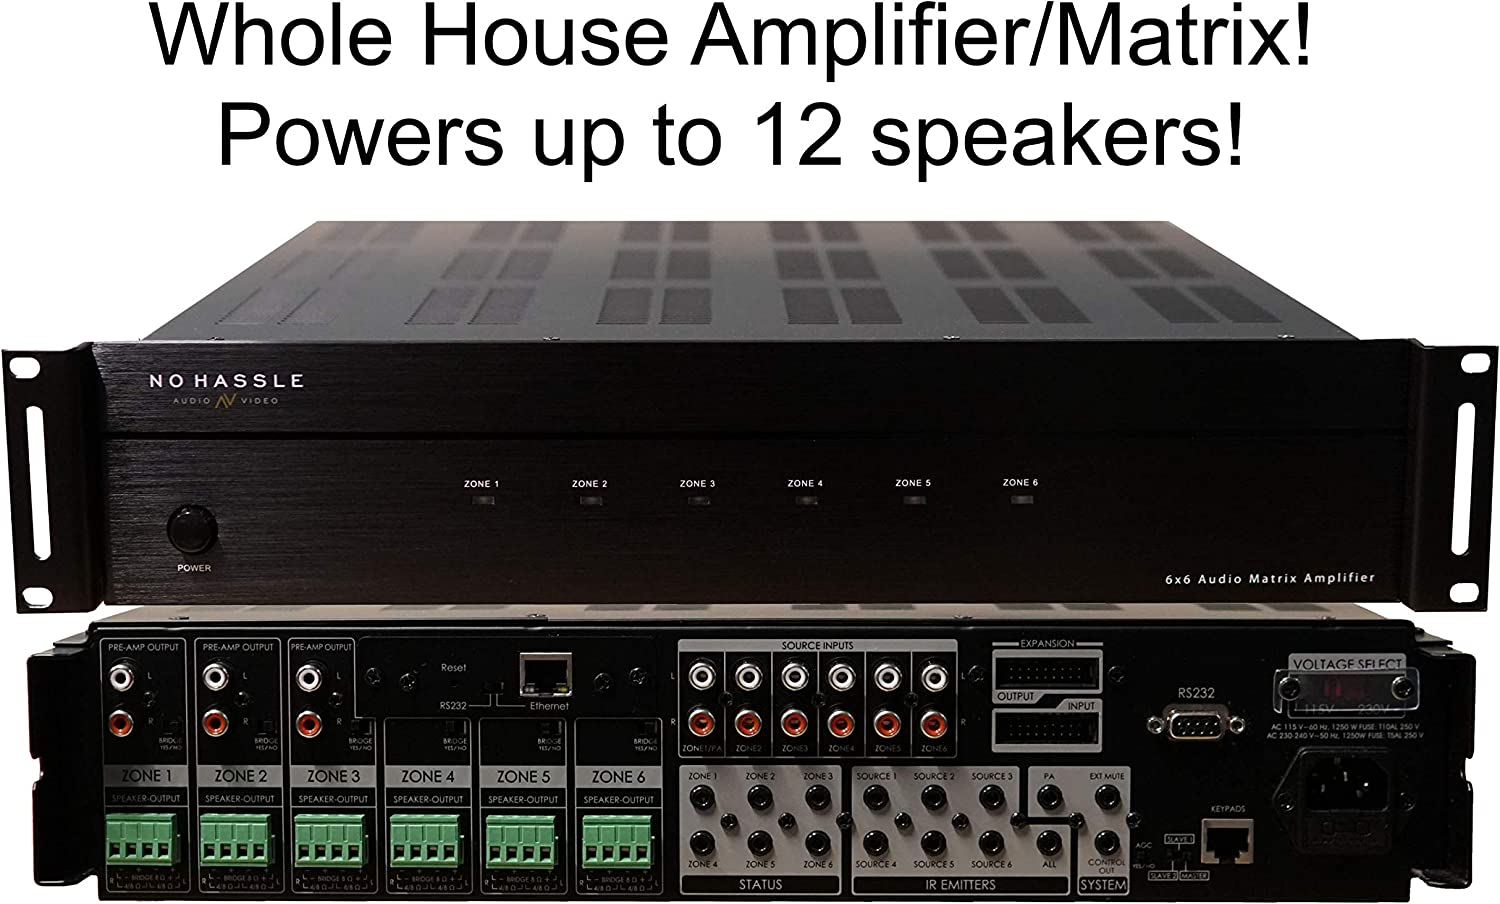 6x6 Whole House Amplifier Matrix Smart Home Amp with App 50 Watts 6 Zones 12 Speakers Control4 Savant URC RTI Simple Control 100 Watts